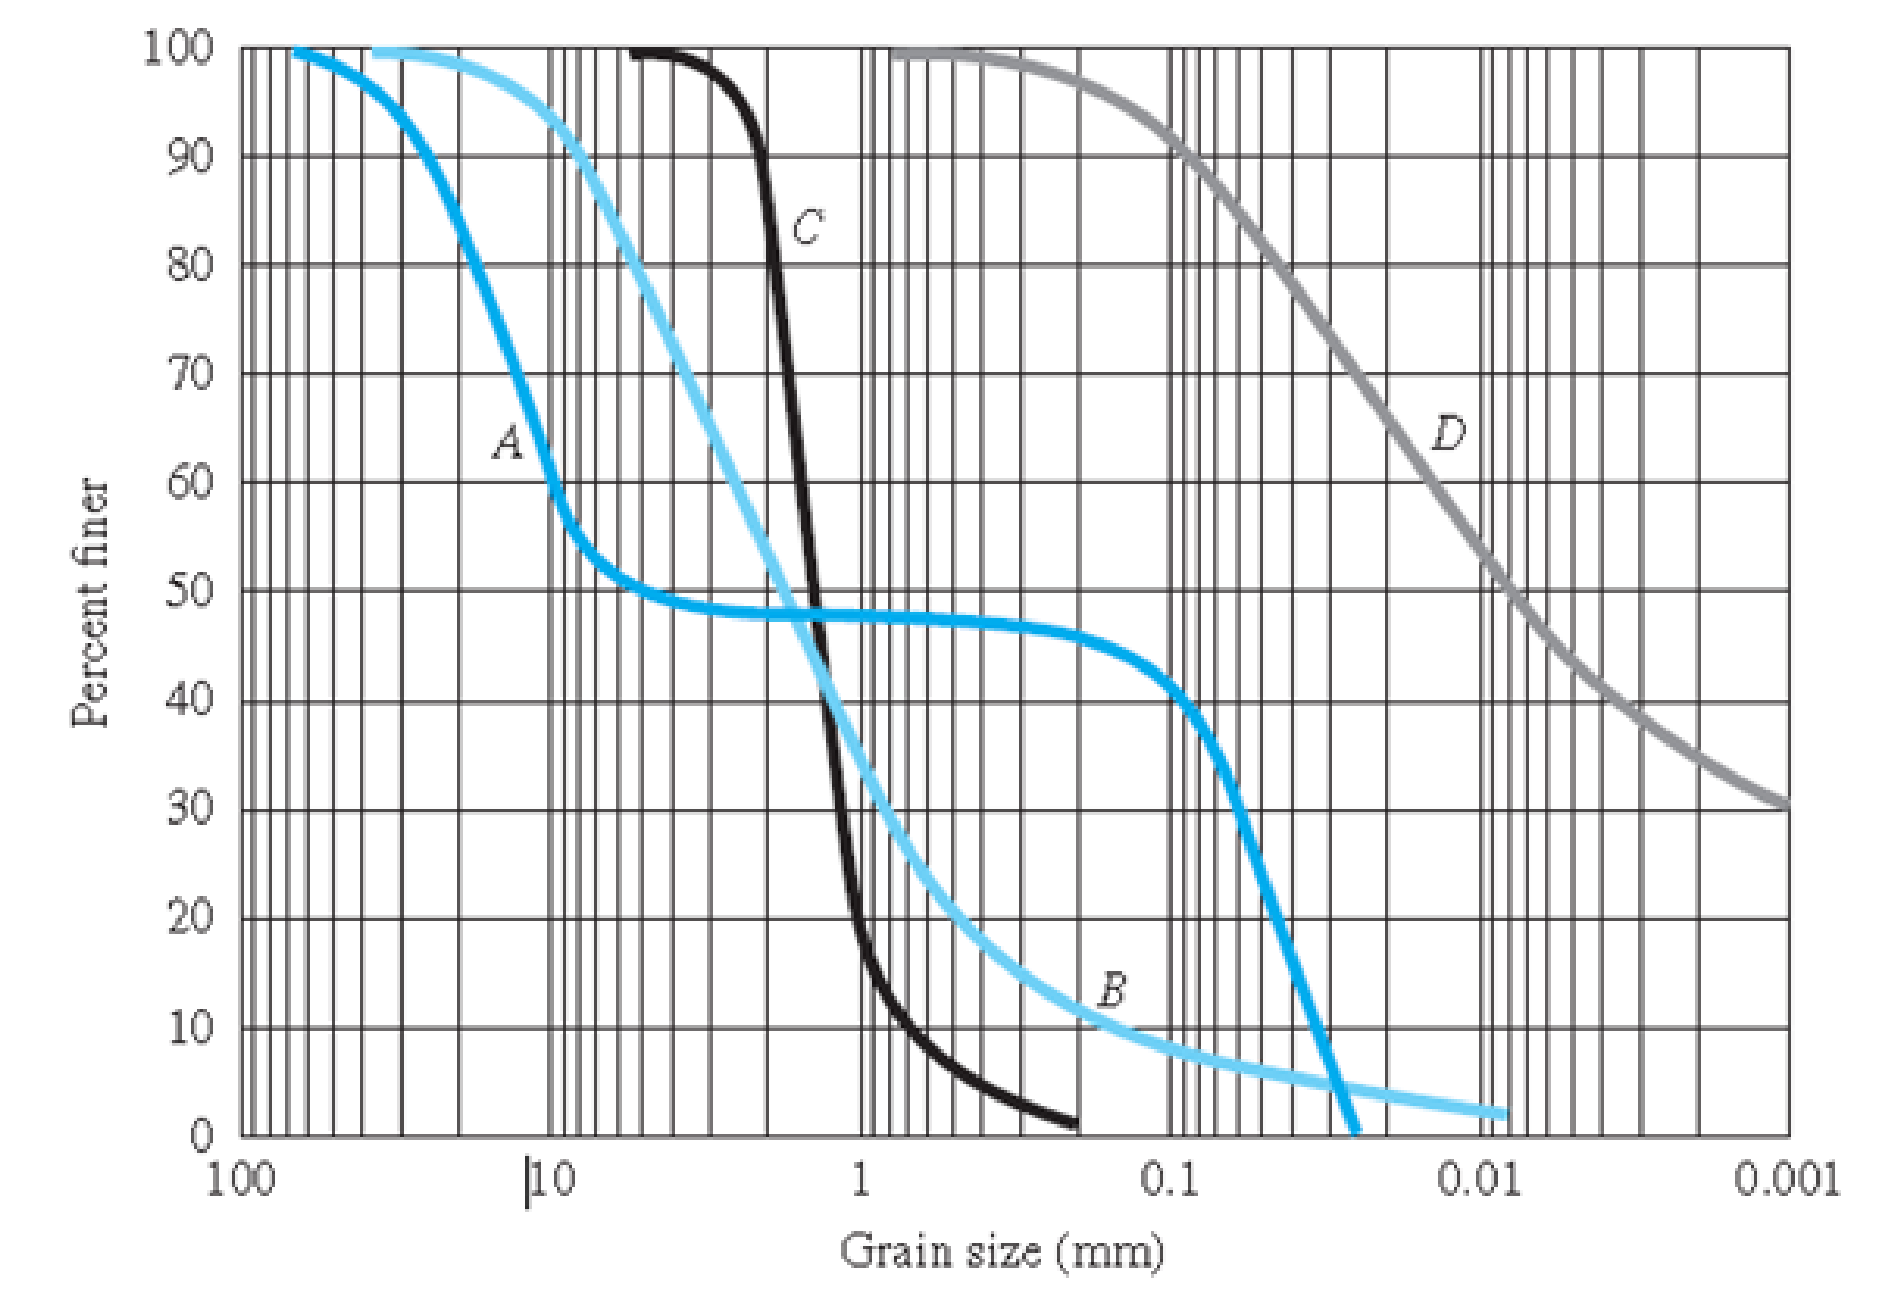 Chapter 2, Problem 2.14P, The grain size distributions of four soils A, B, C, and D are shown in Figure 2.26. Without carrying